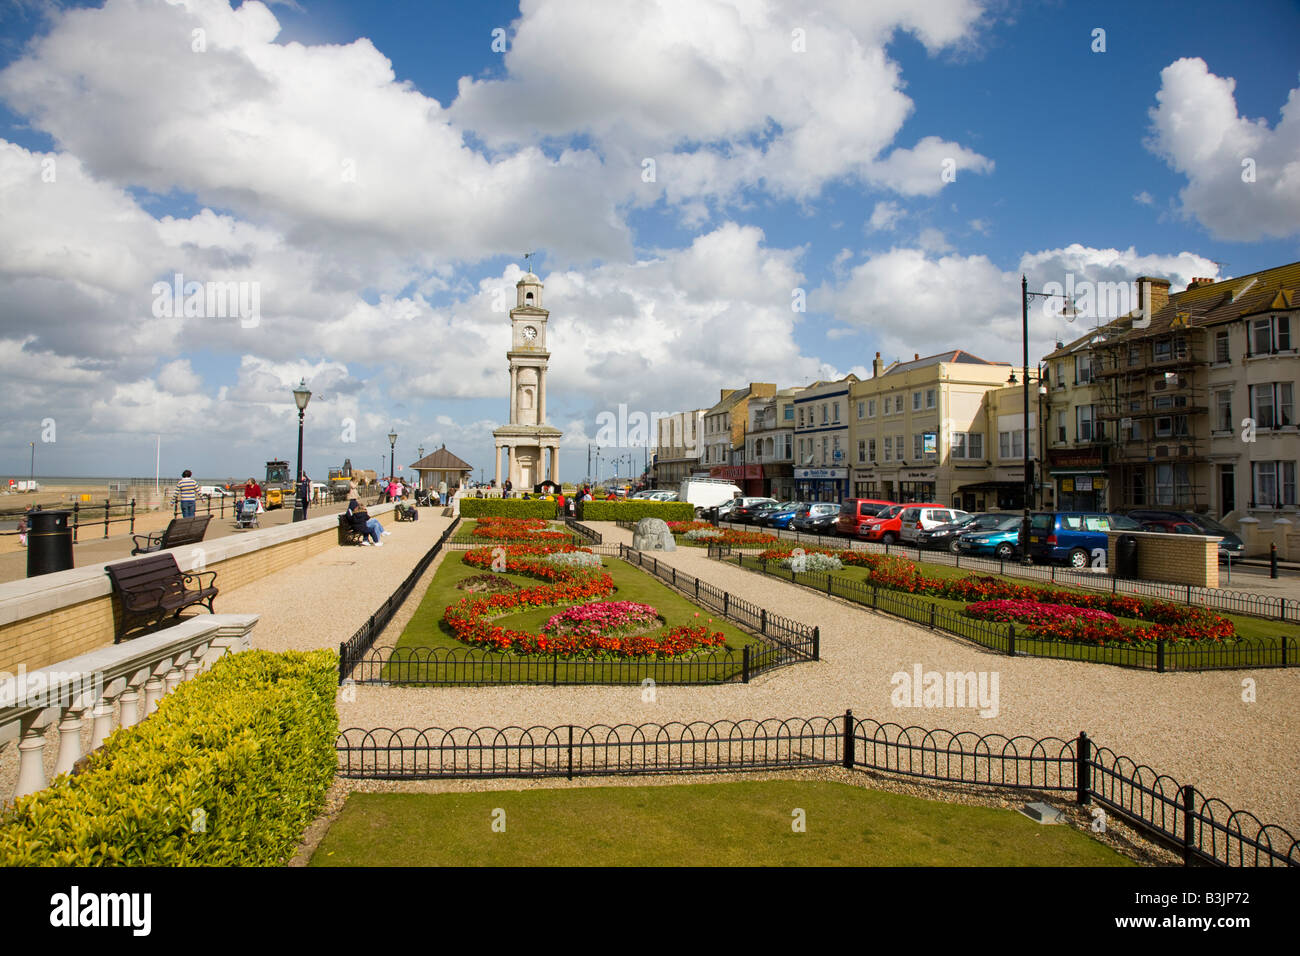 Town centre and public formal gardens in herne bay kent stock photo 19466918 alamy for Kent gardens elementary school